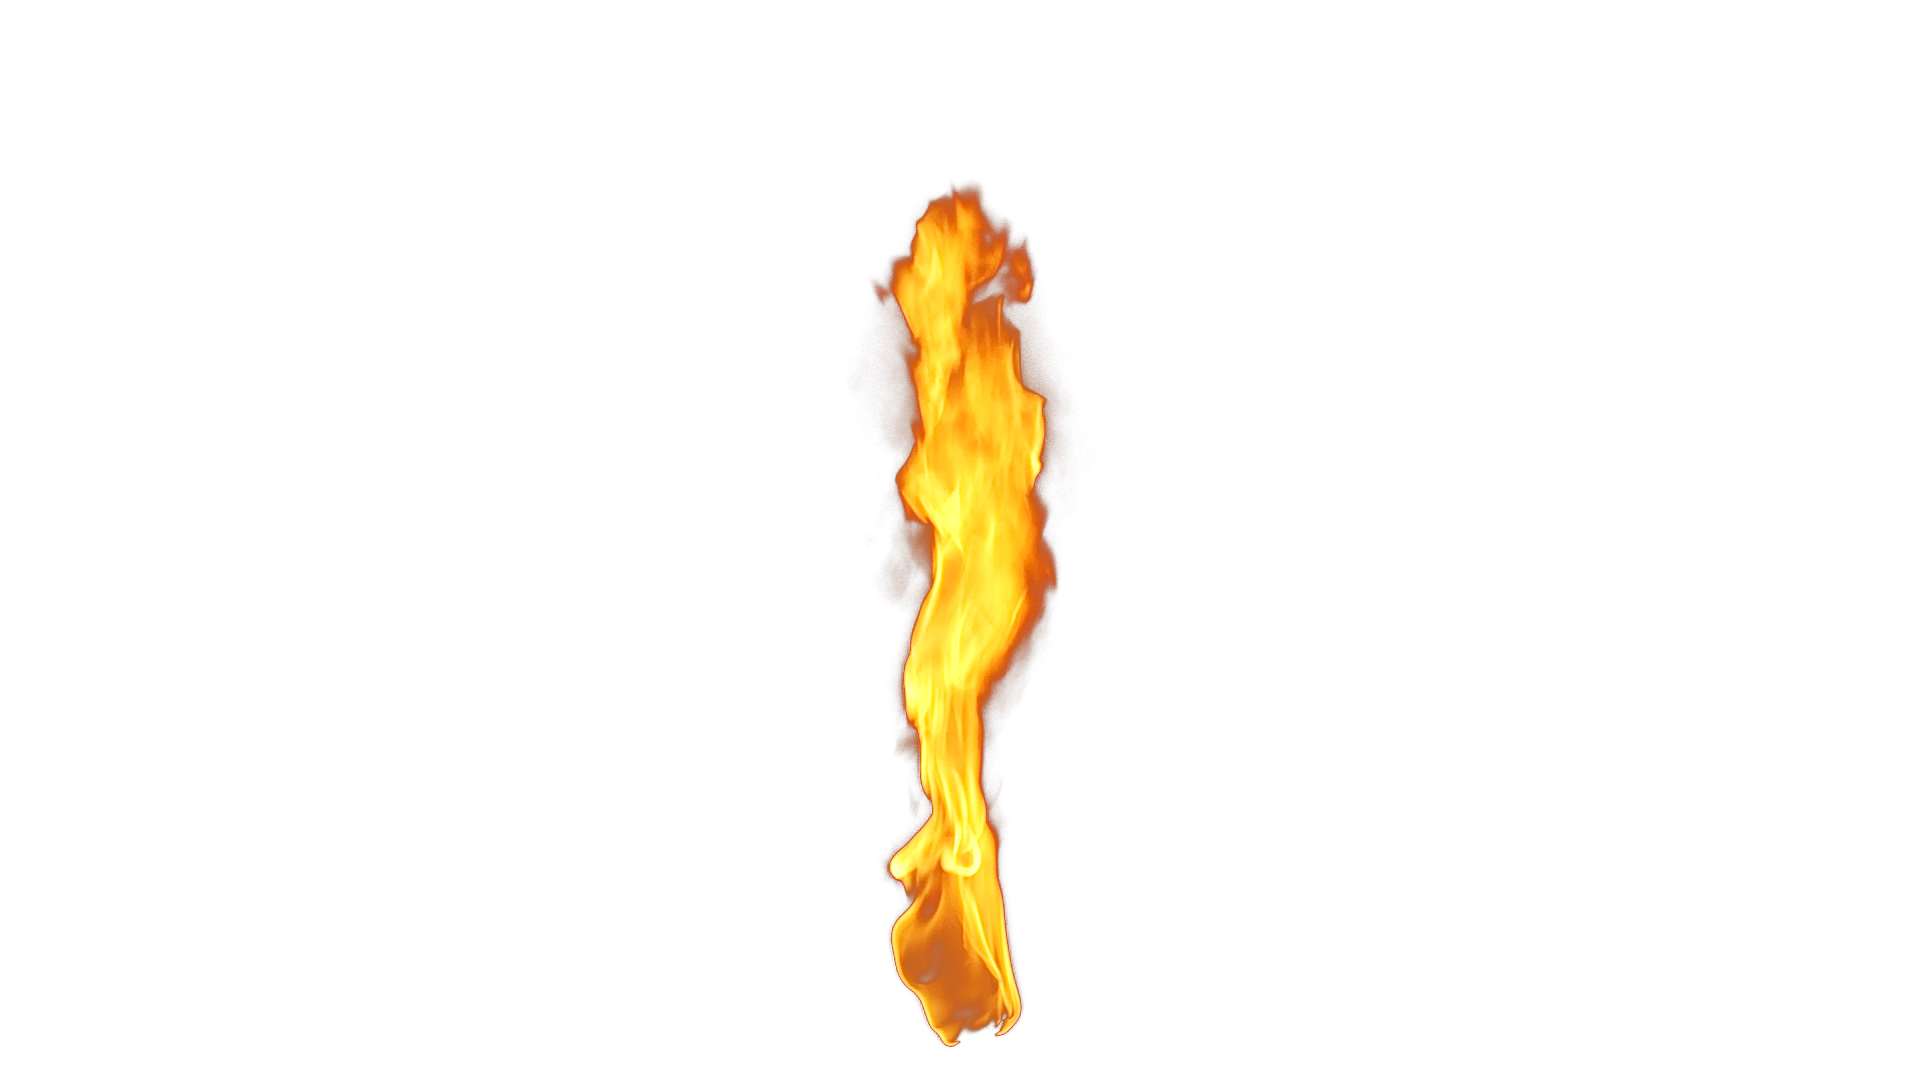 Download For Free Fire Png In High Resolution #676.